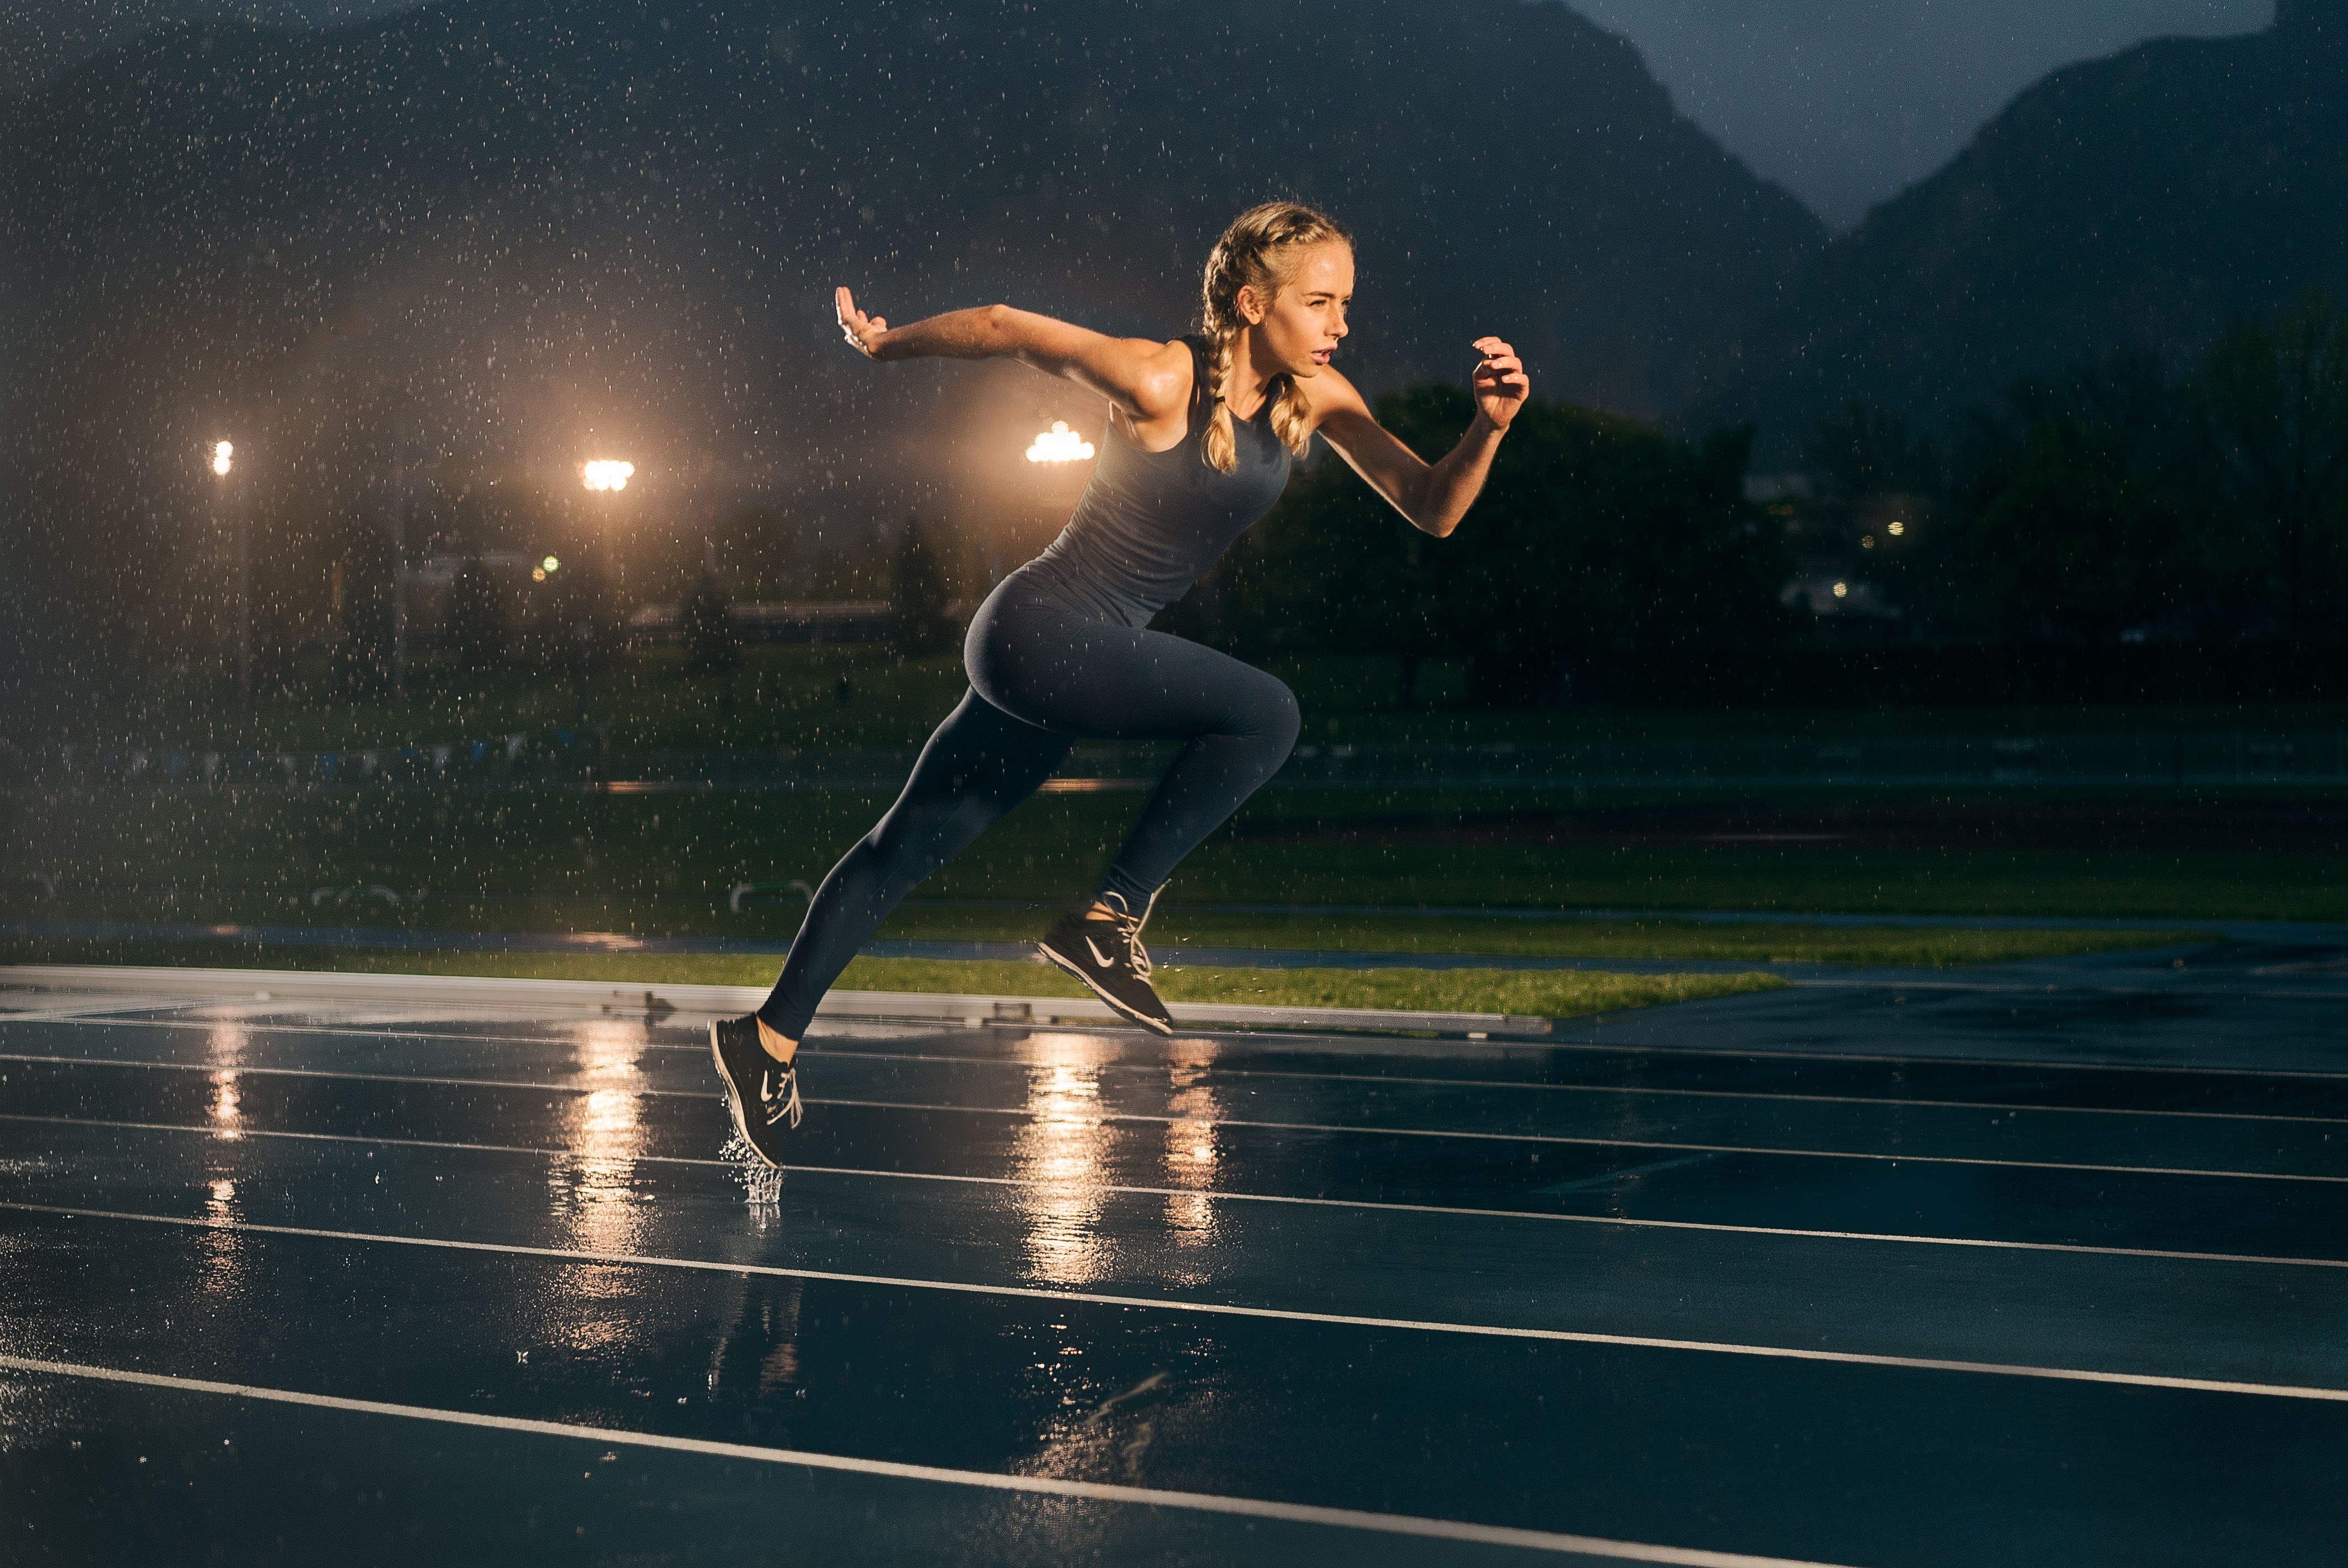 Sports Photo and Video - Runner #female #women #runner # ...